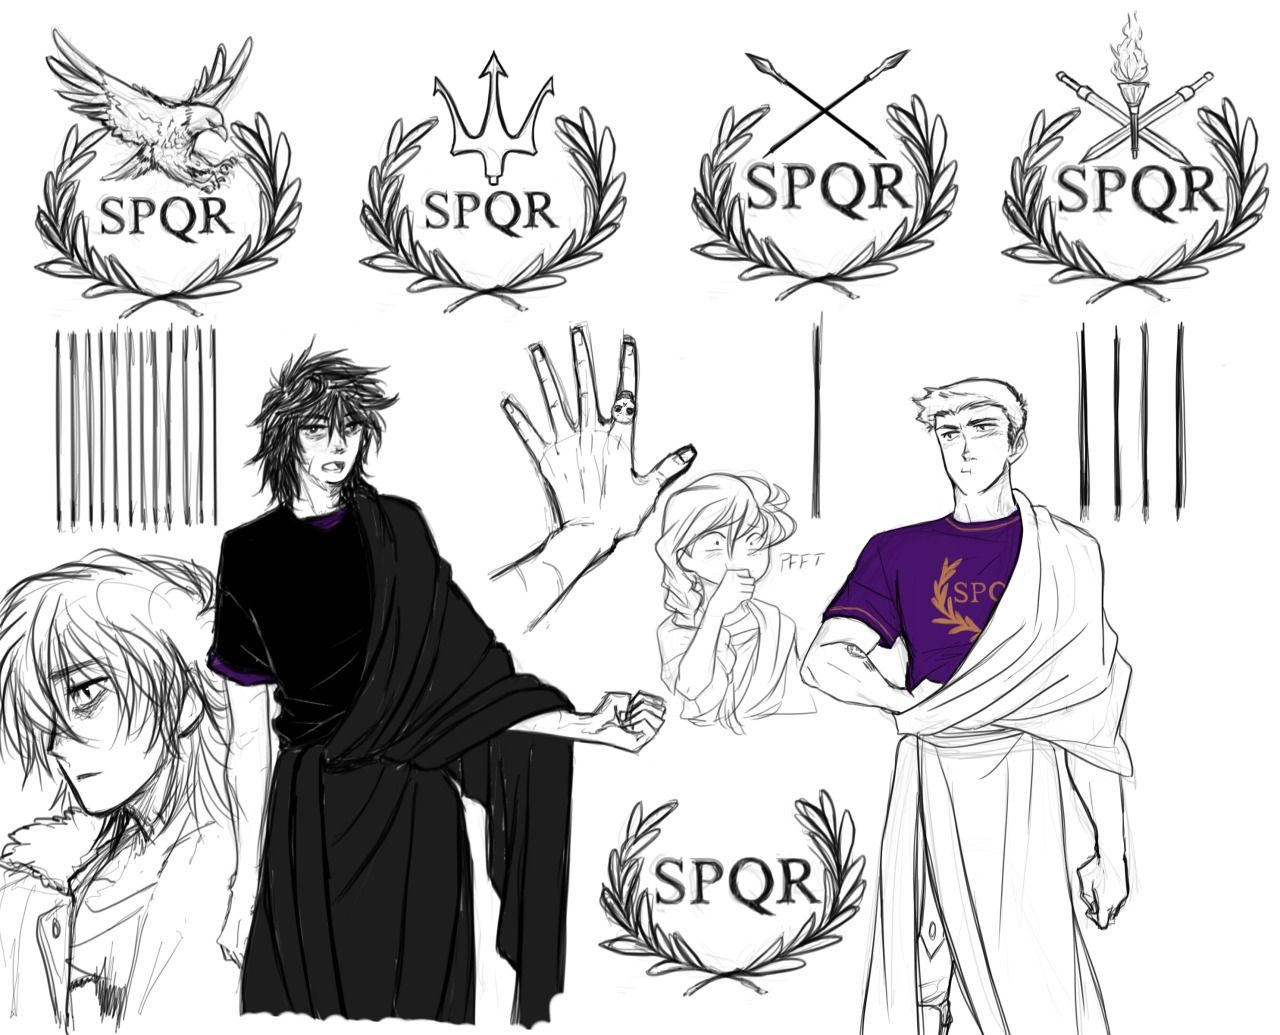 whoopla — SPQR tattoos of Jason, Percy, Frank, and Renya